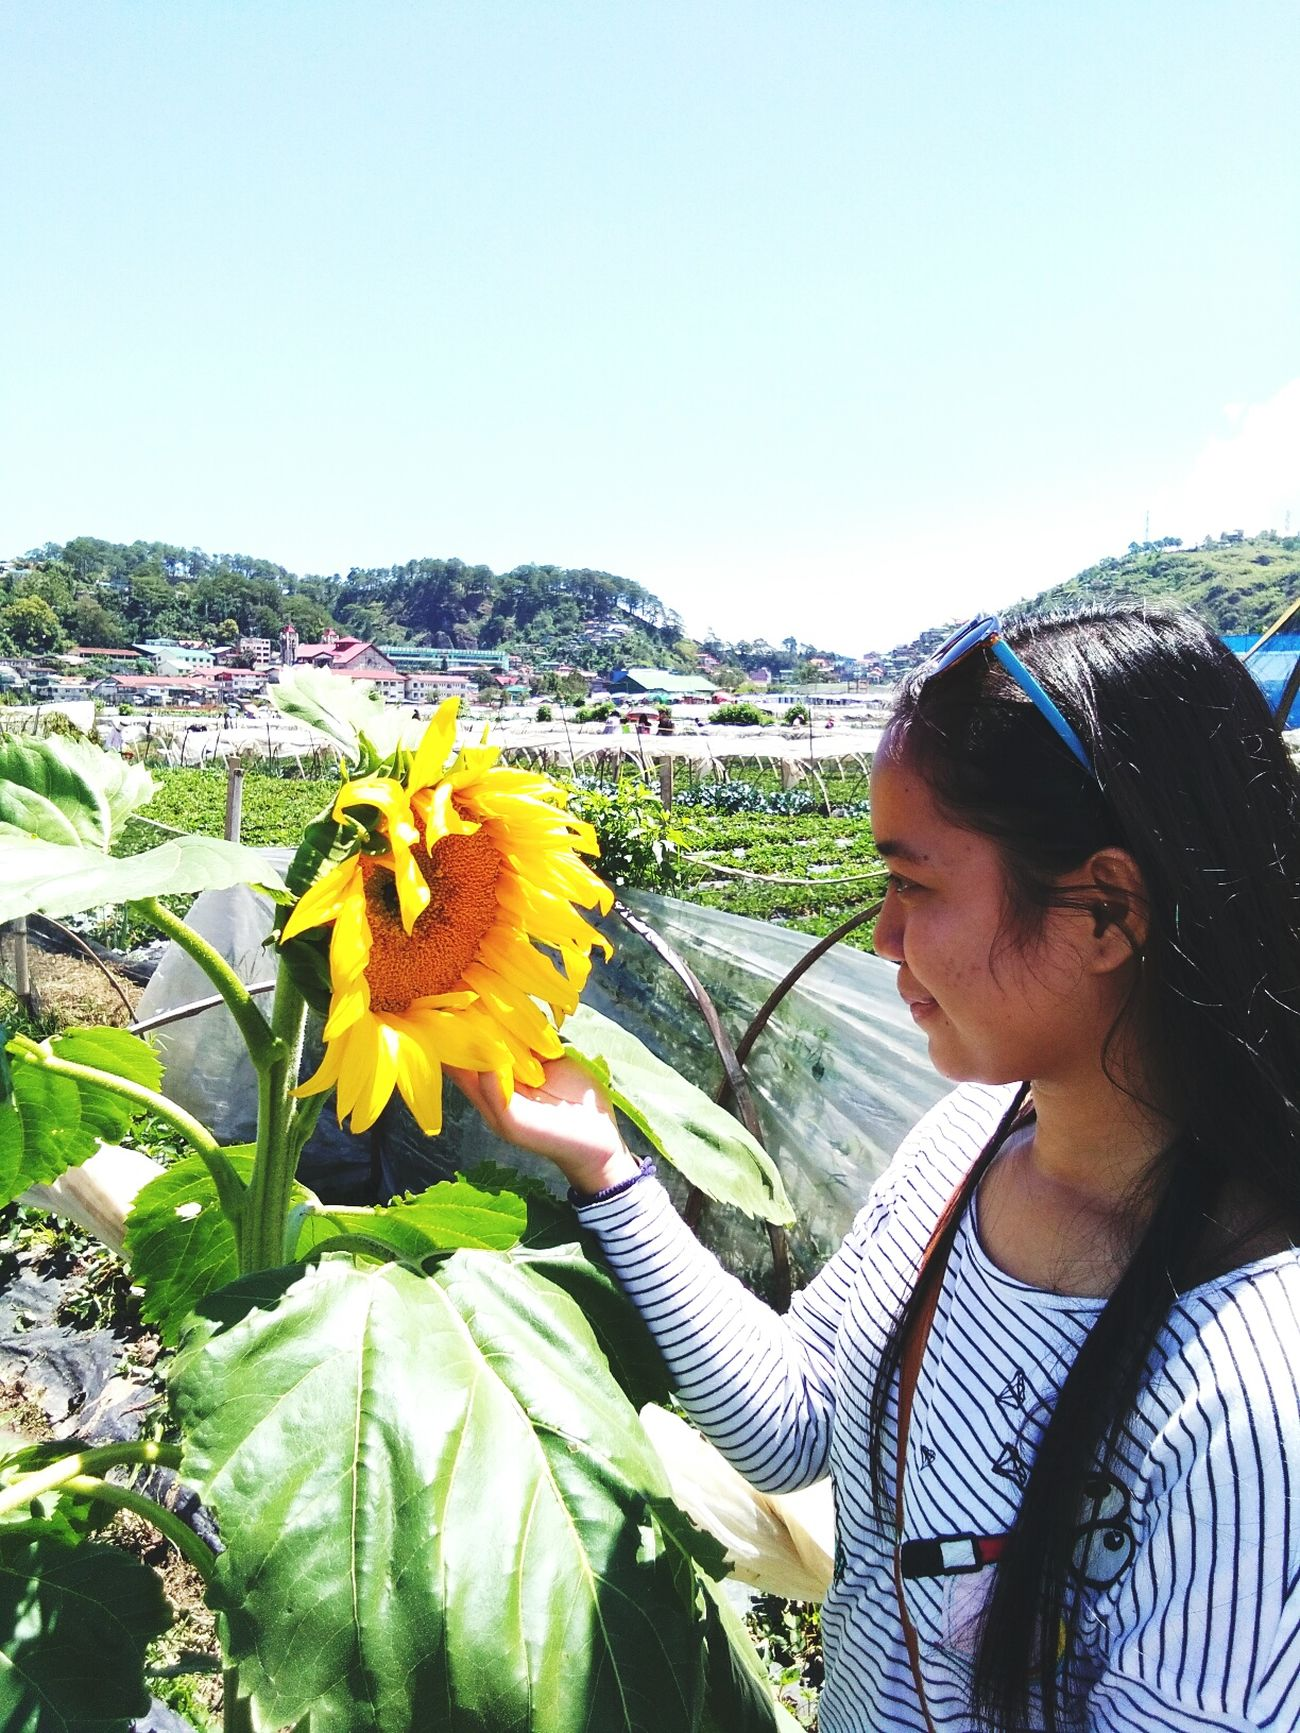 Flower Sunflower Sky Outdoors Nature Greenfield Sunny Summer Sunflower Teenager Green Strawberryfield Sunnyday Yellow